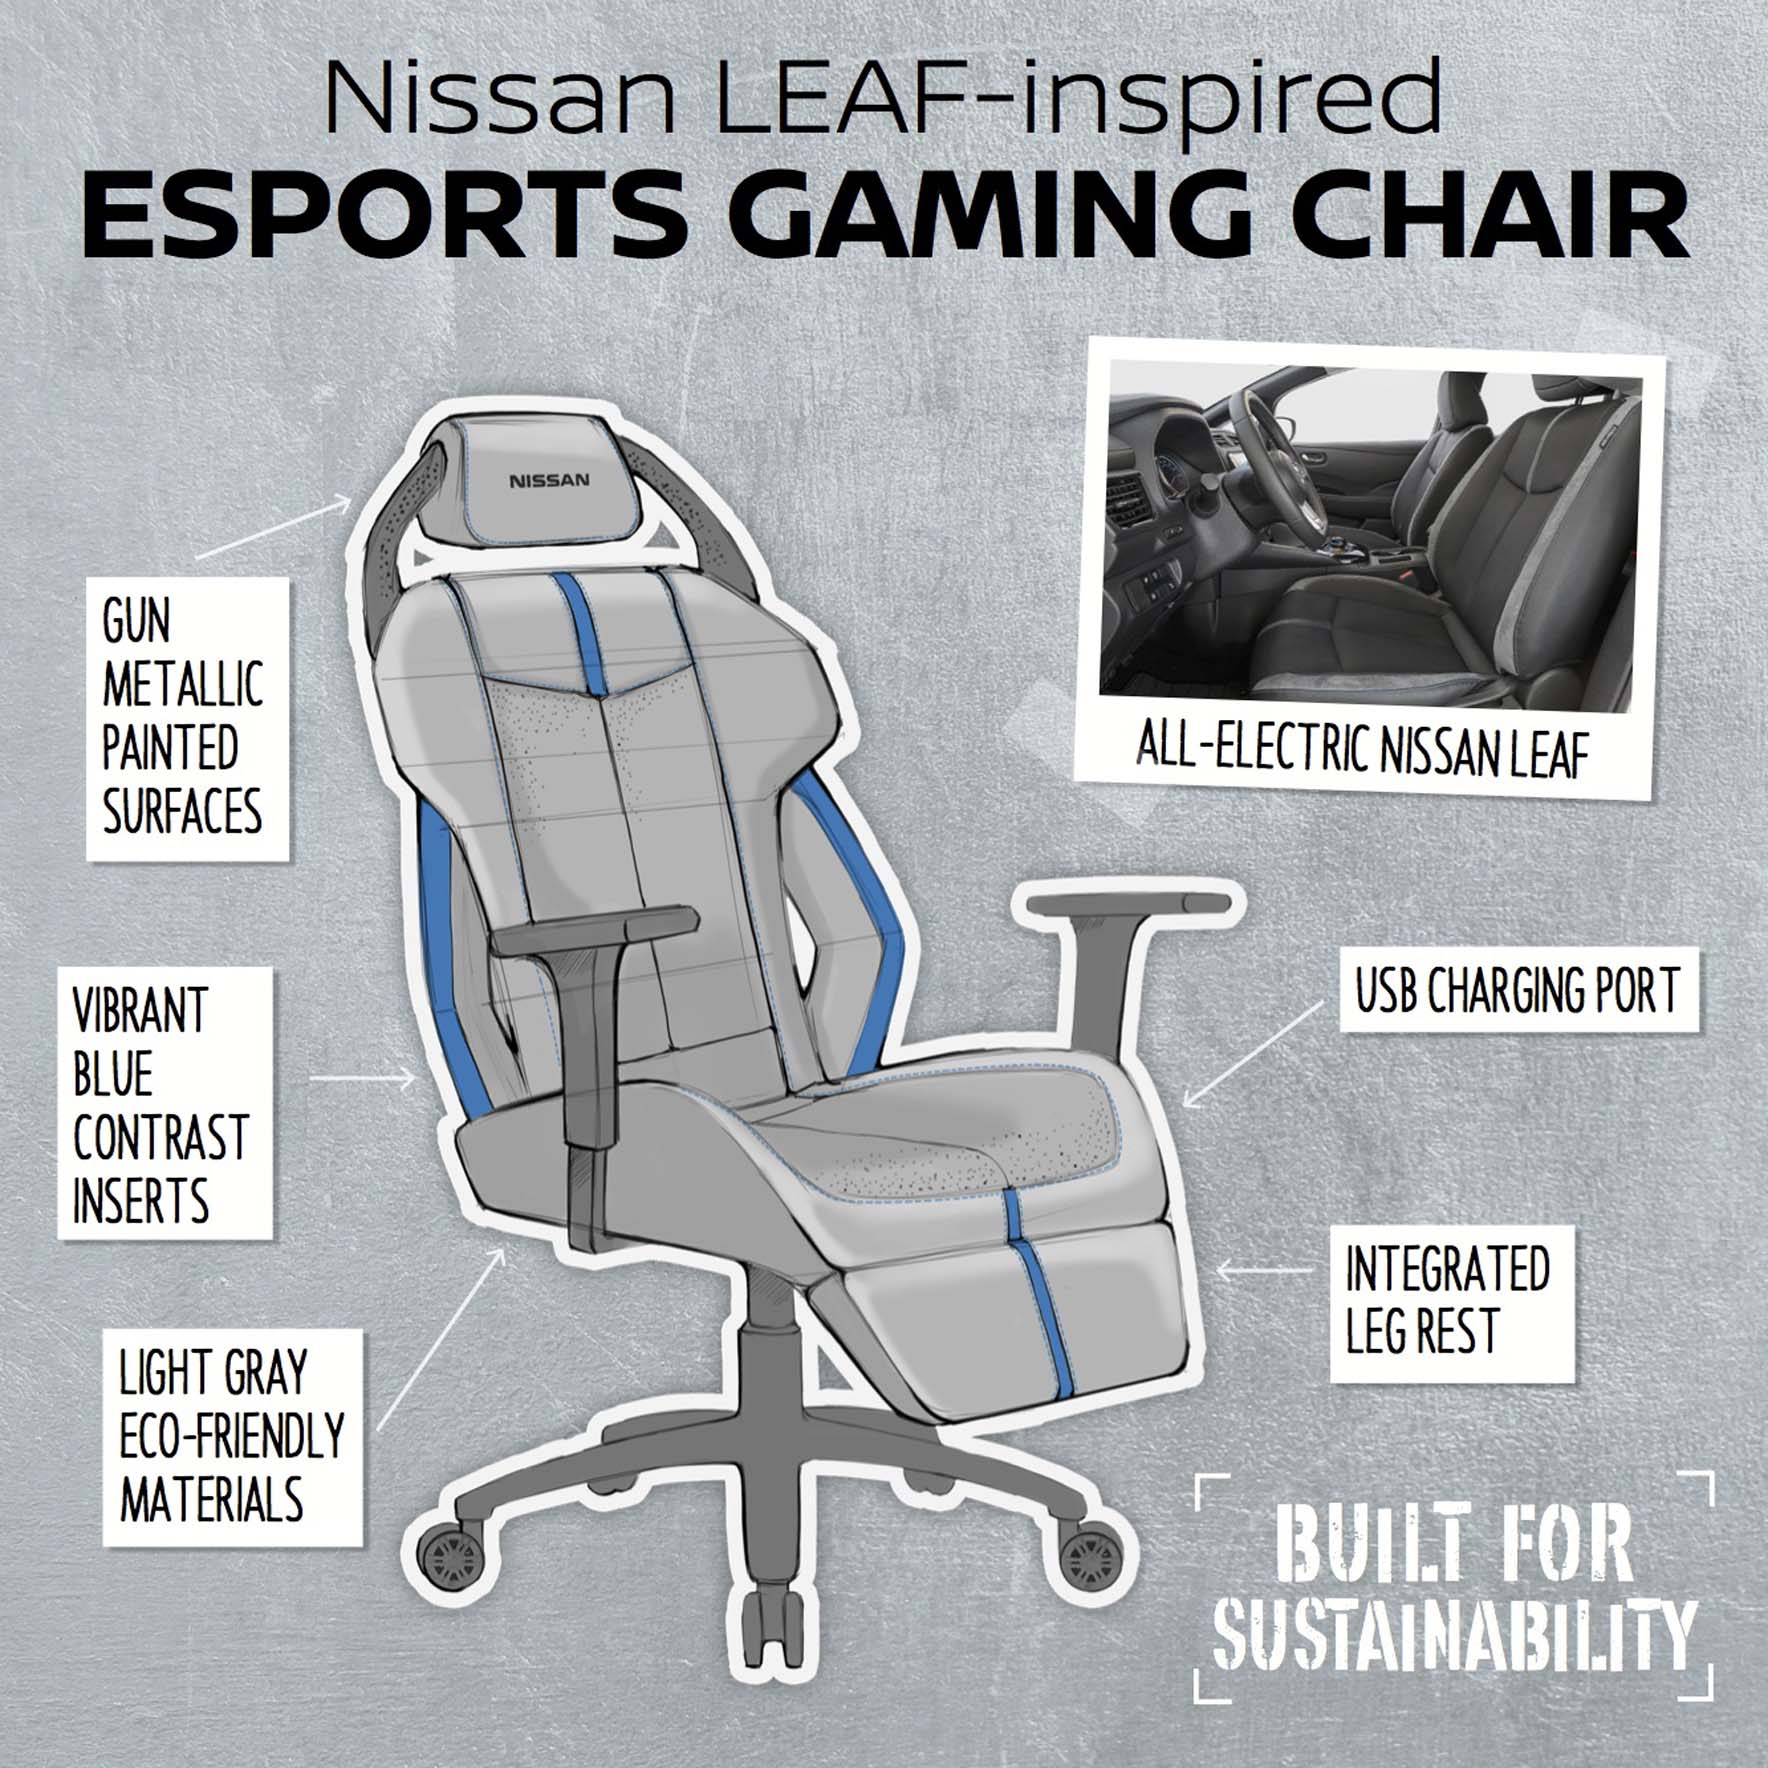 Ultimate-esports-gaming-chairs-LEAF